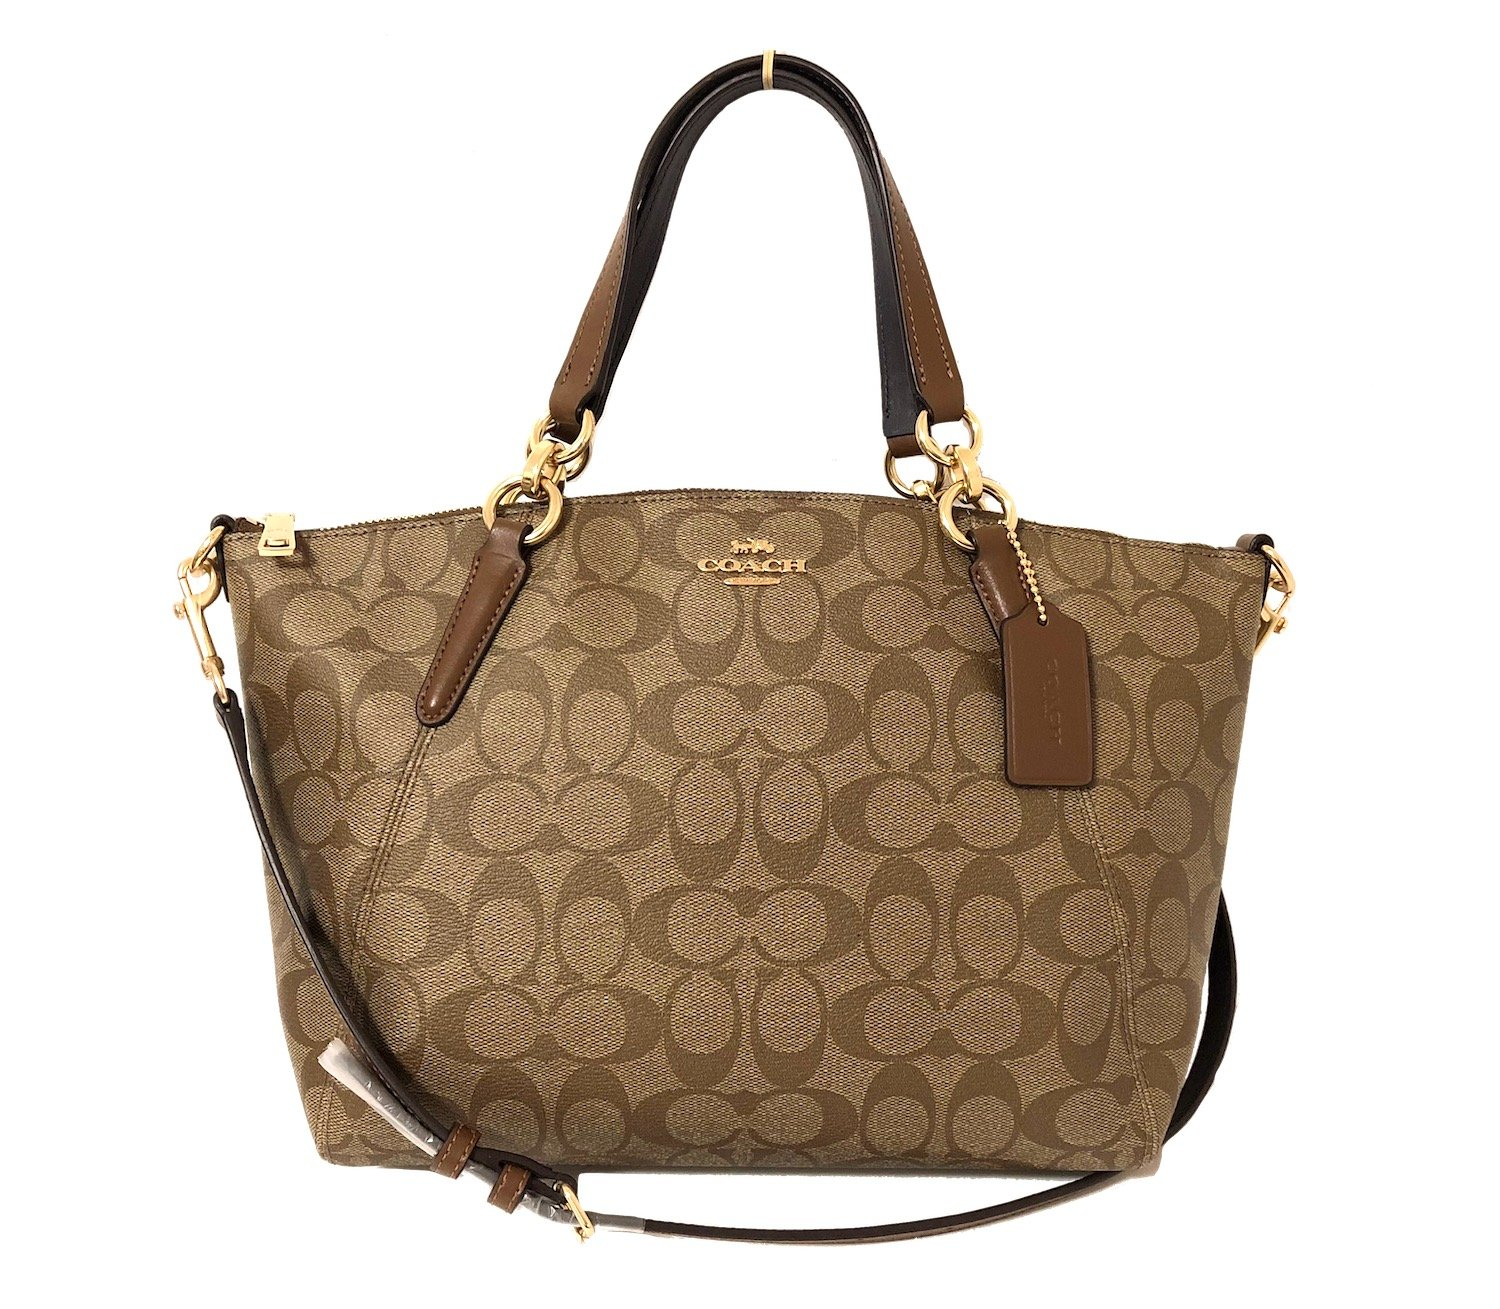 Step 3-Peruse the Coach website to view current handbag collections 5f5881c6fd829